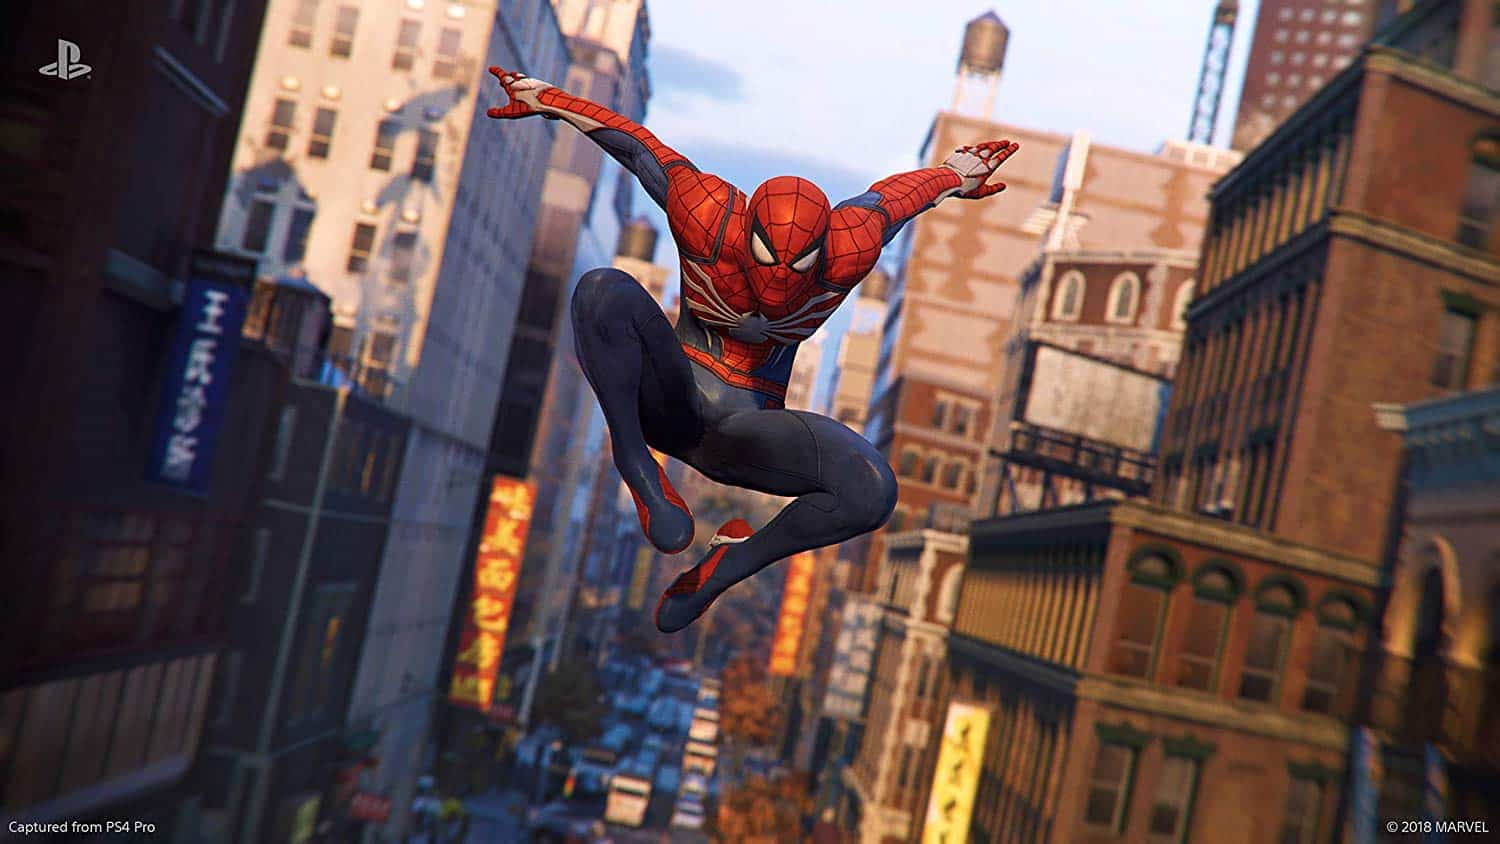 Spider-Man on PS4